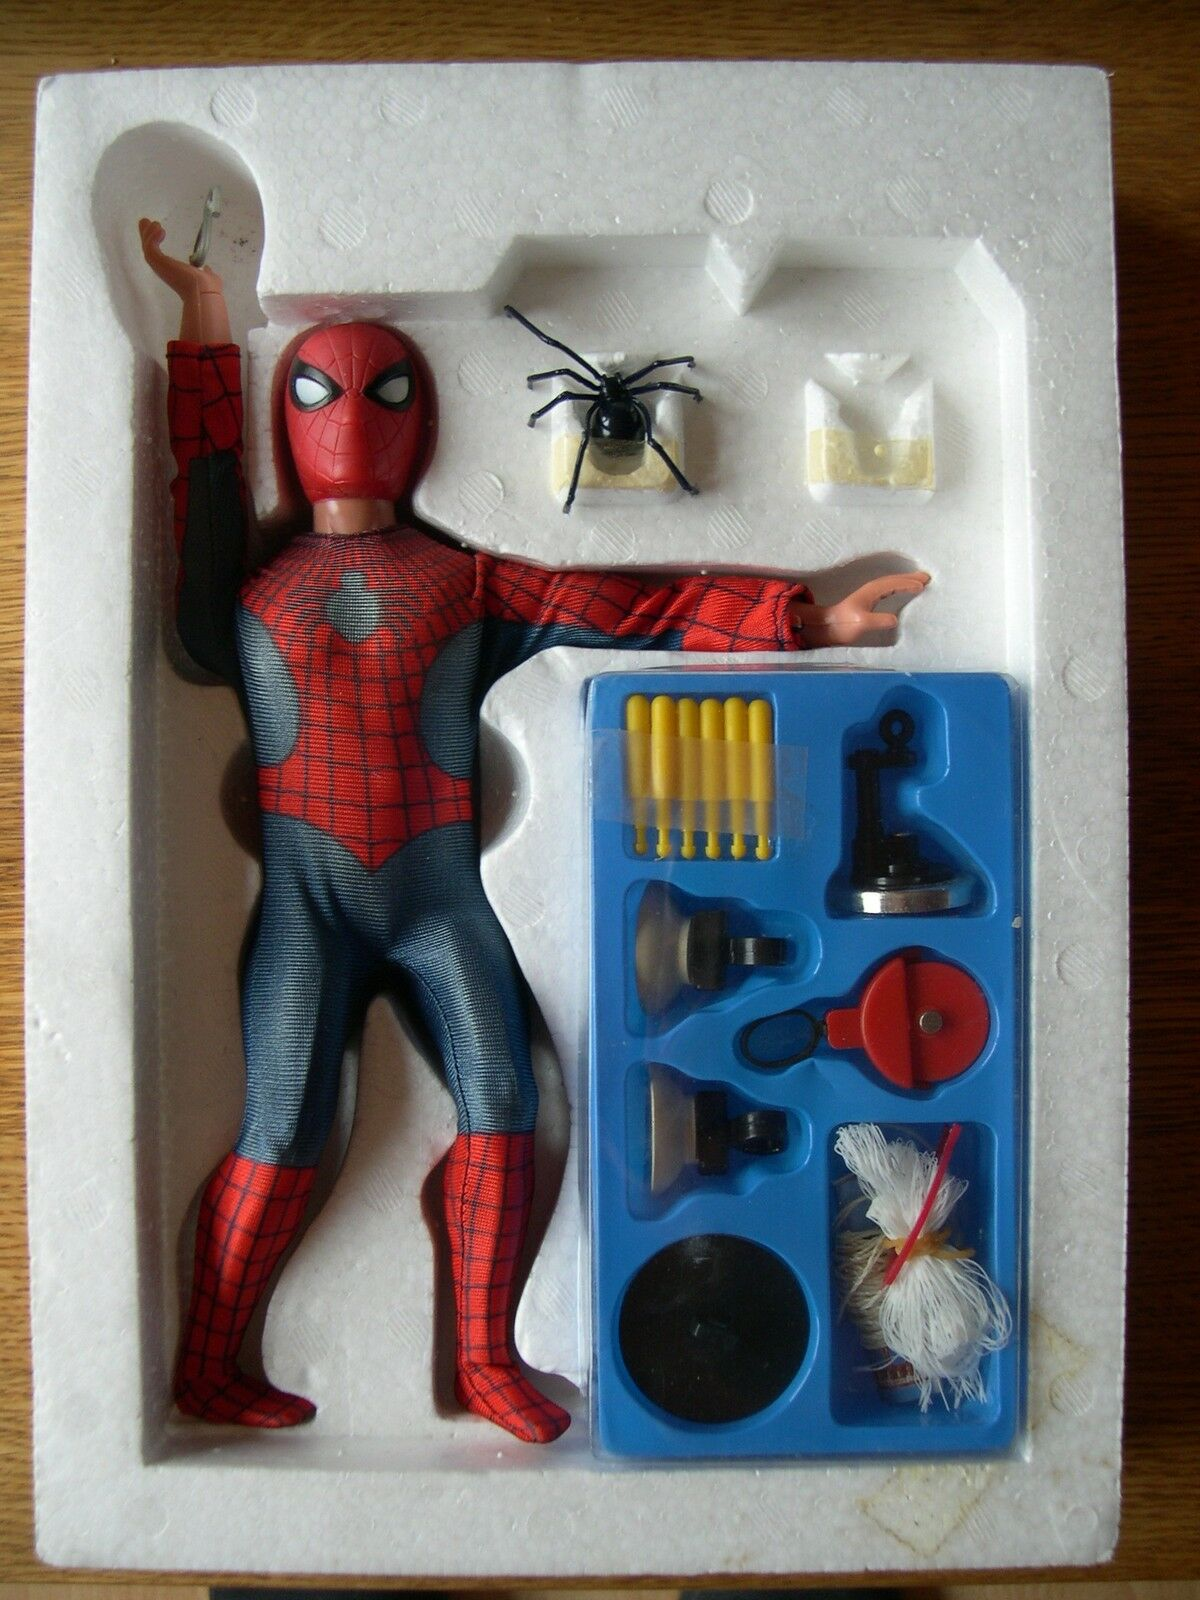 Japanese Figure-Rare-Marvel-Mego-Japan Popy Spider-Man Action Figure-Rare-Marvel-Mego-Japan Japanese 7f493d